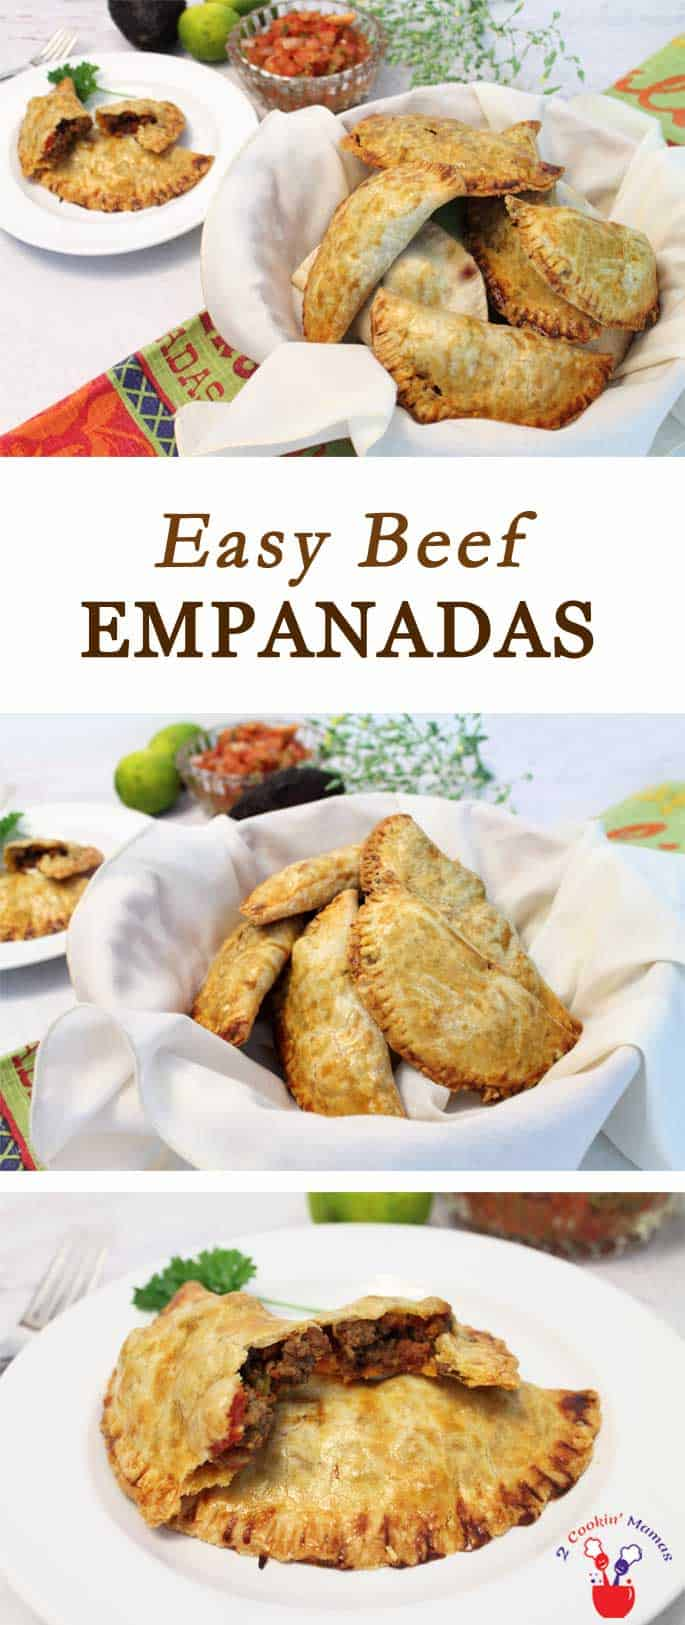 Easy Beef Empanadas | 2 Cookin Mamas These easy beef empanadas are pockets of beef, chorizo and tomatoes baked up in a crispy pie crust. They go together in minutes & are always a party hit!